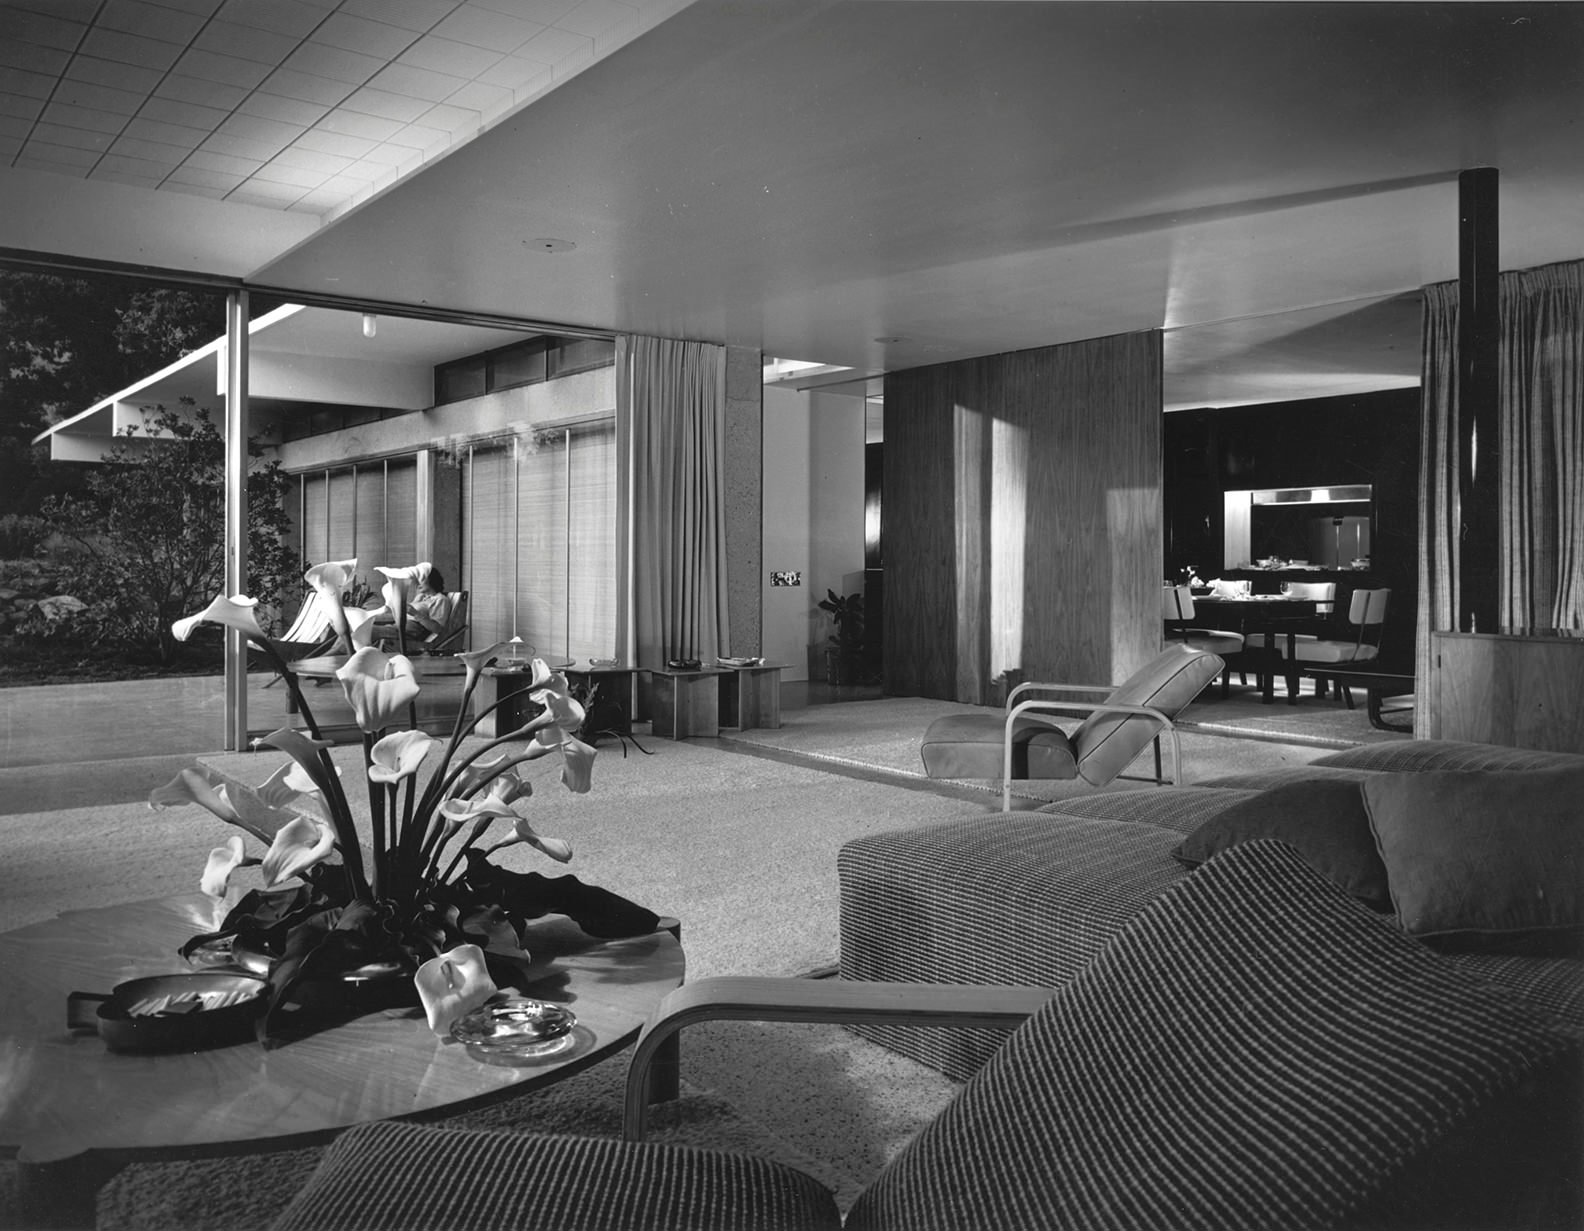 salon Casa en Montecido california diseñada por Richard Neutra